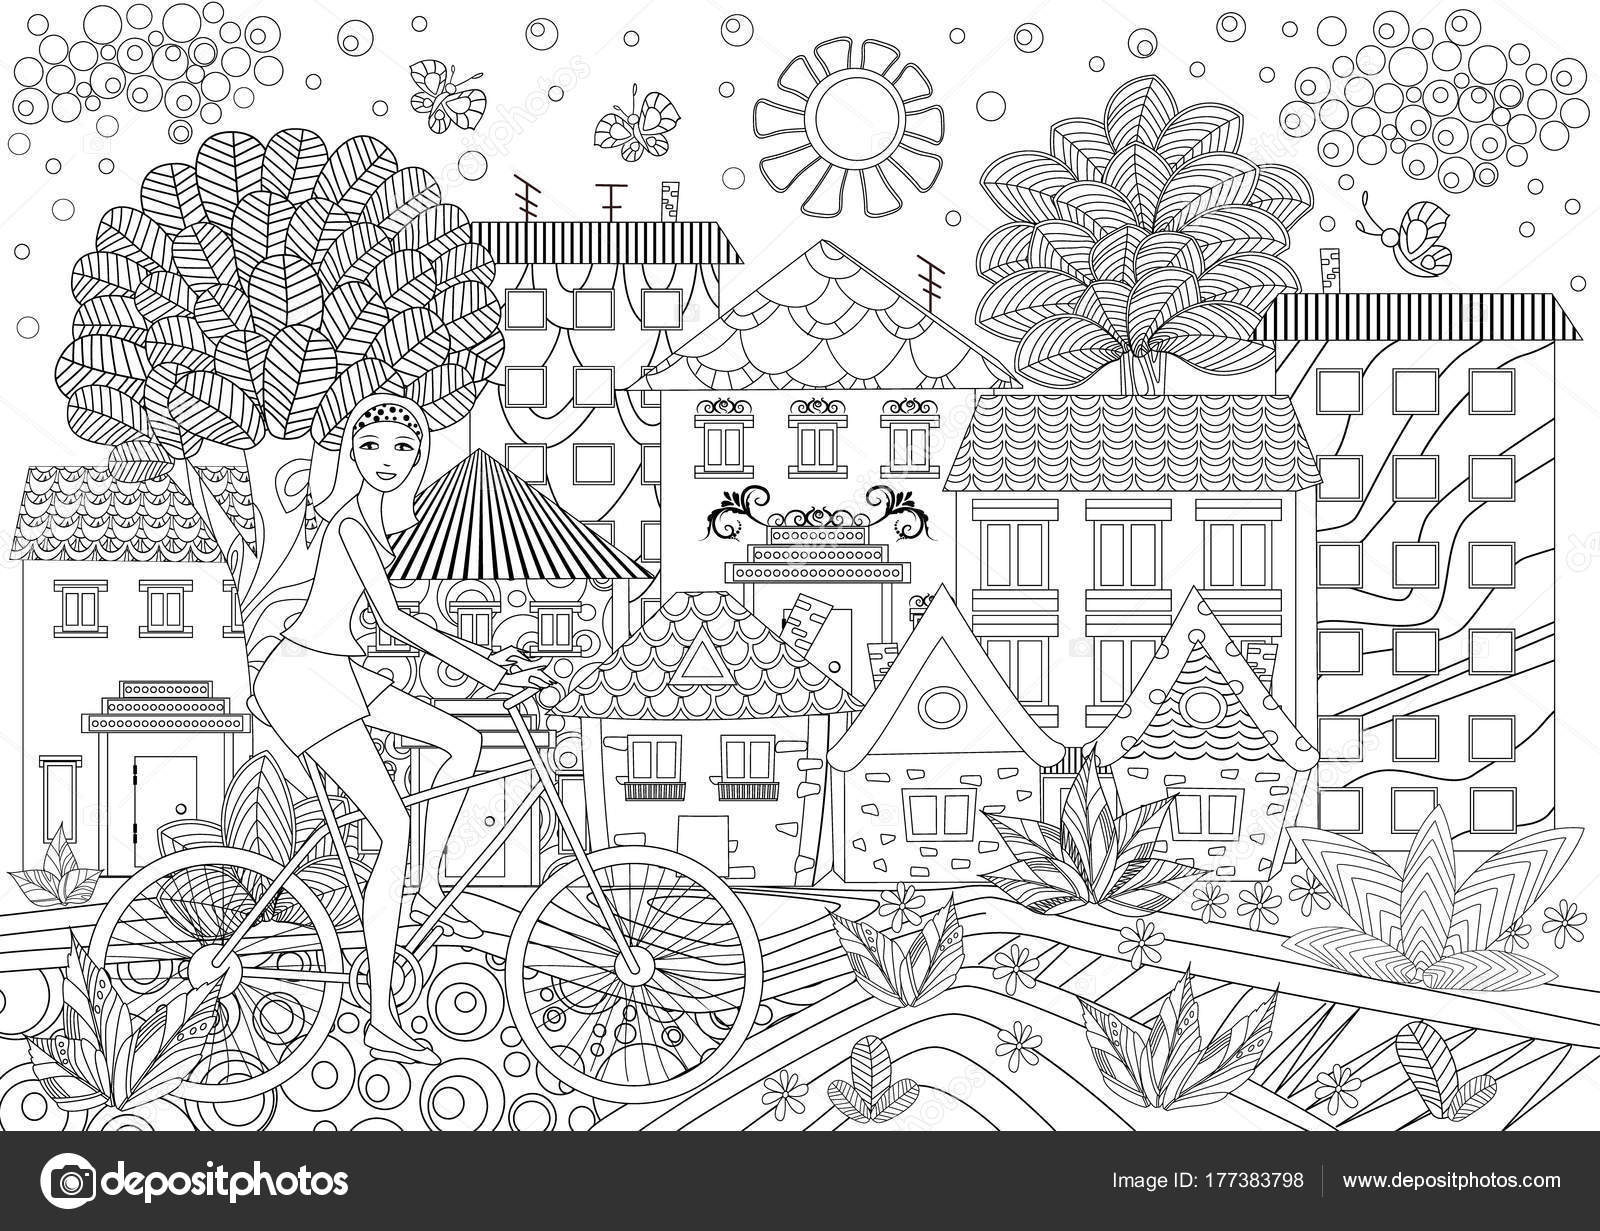 Young Girl Bike City Coloring Book Stock Vector C Oksana 177383798